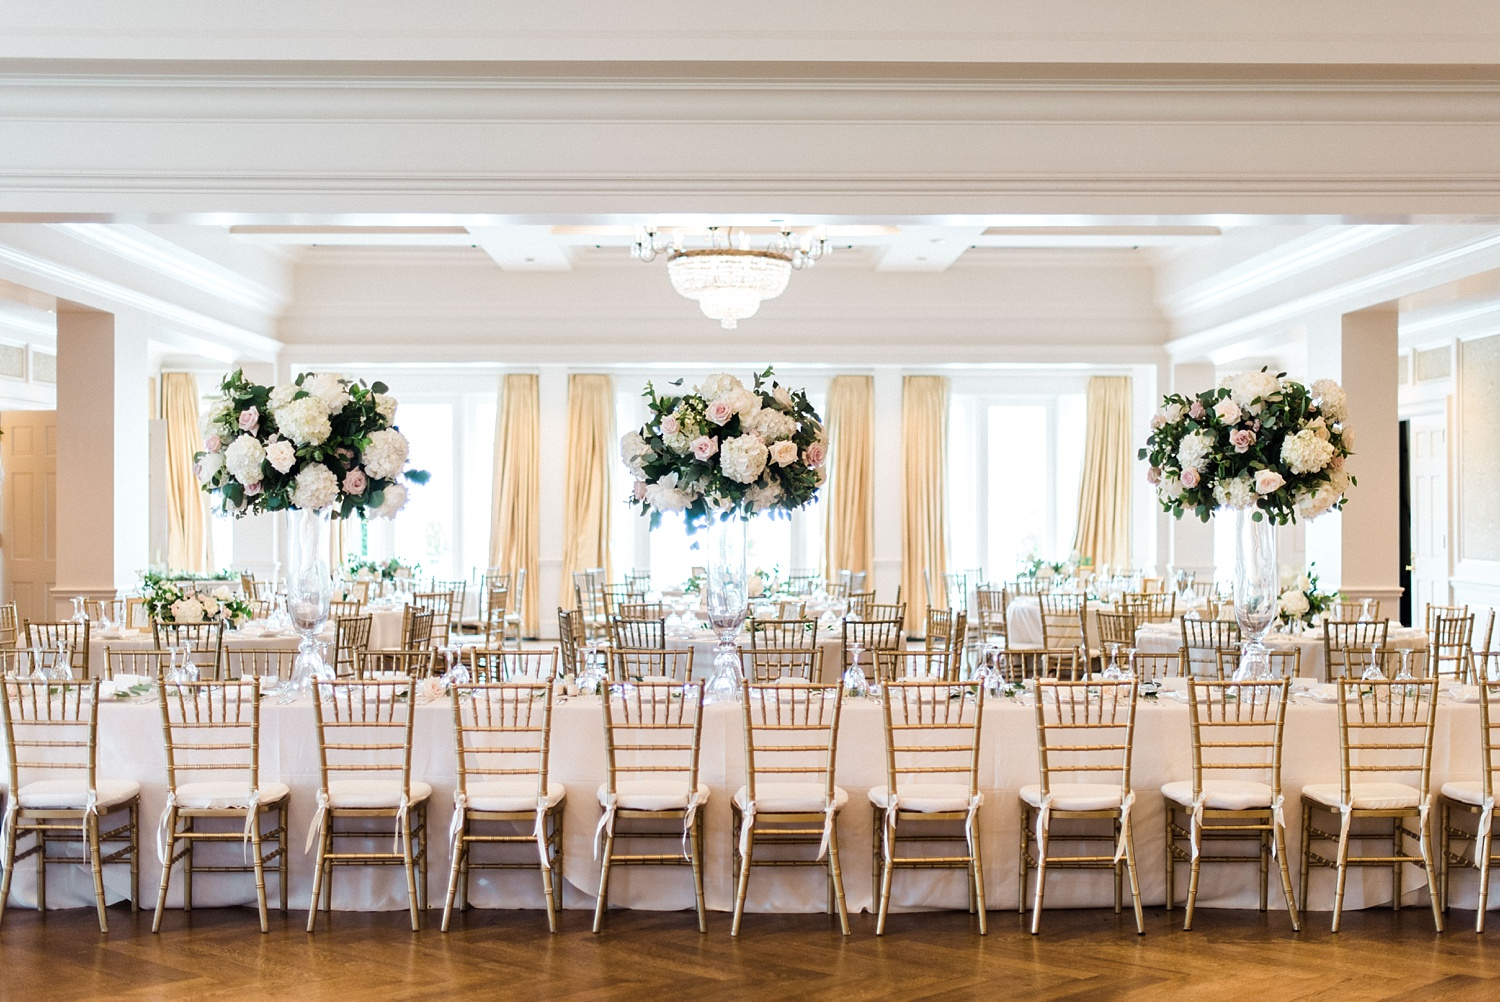 Enhancing the Look of a Banquet Hall With Curtains